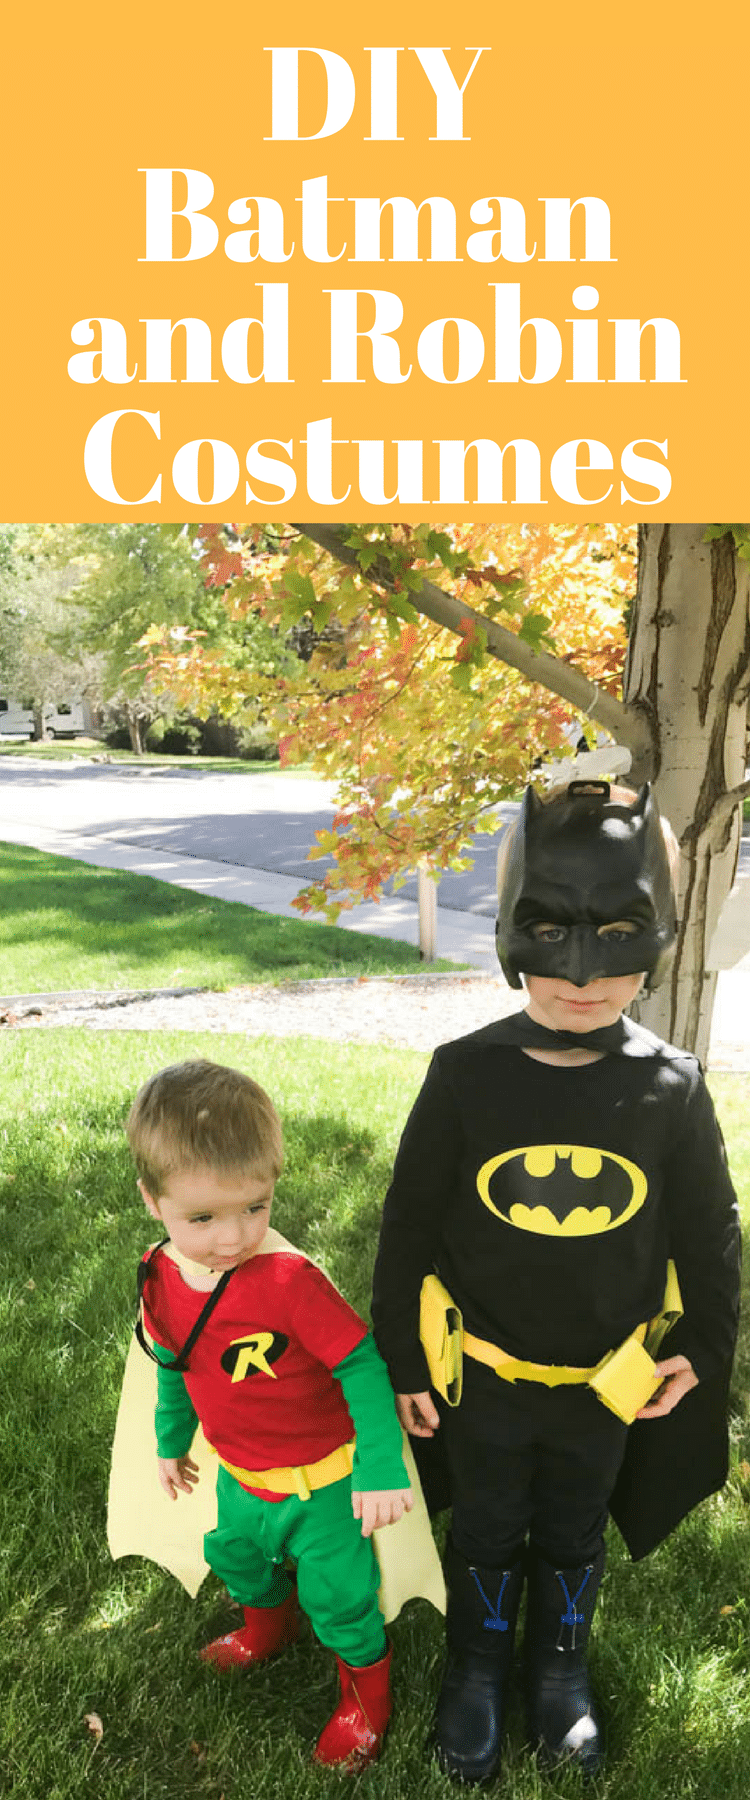 DIY Batman Costume / DIY Robin Costume / Robin Costume for Toddlers / Batman Costume for Kids / DIY Halloween